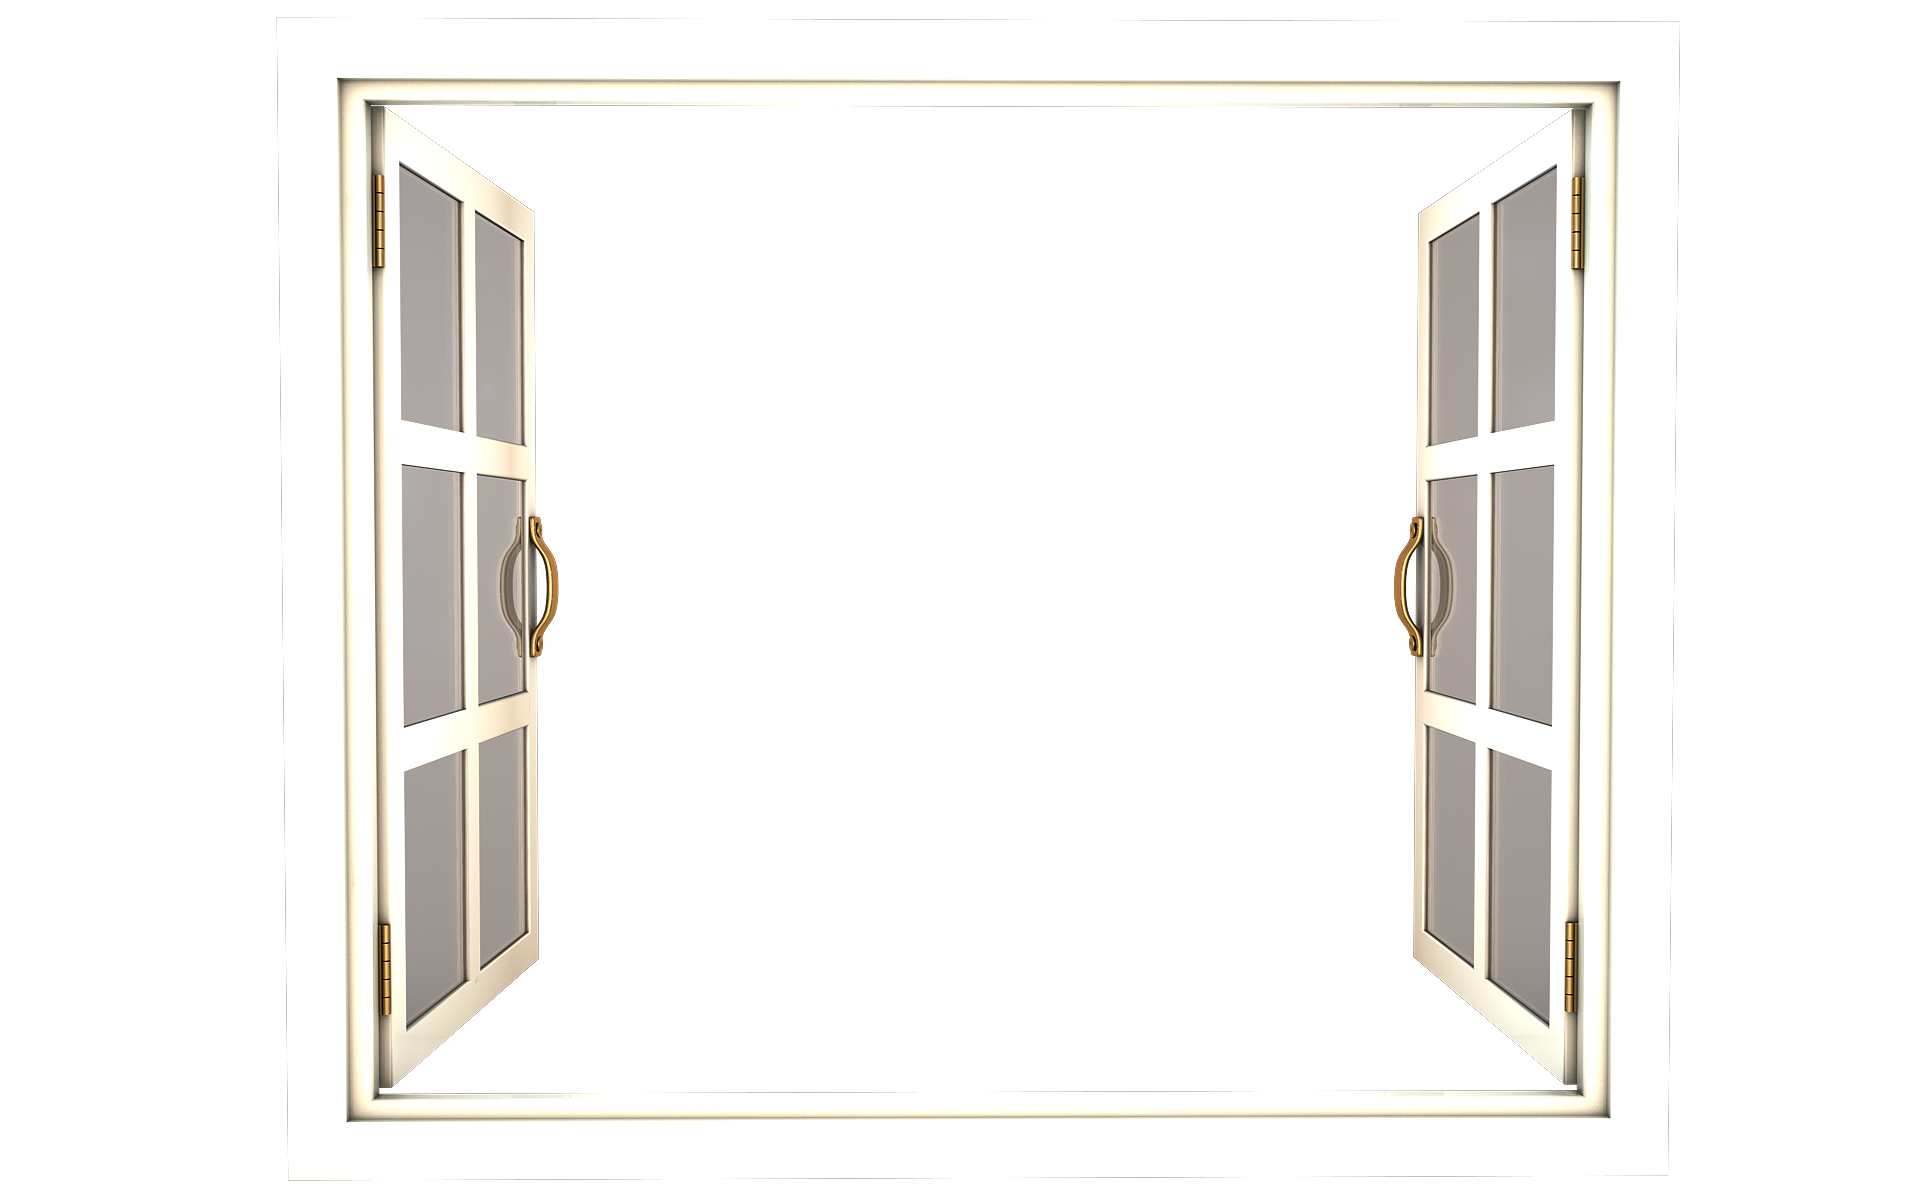 x png tfa. Win clipart window frame